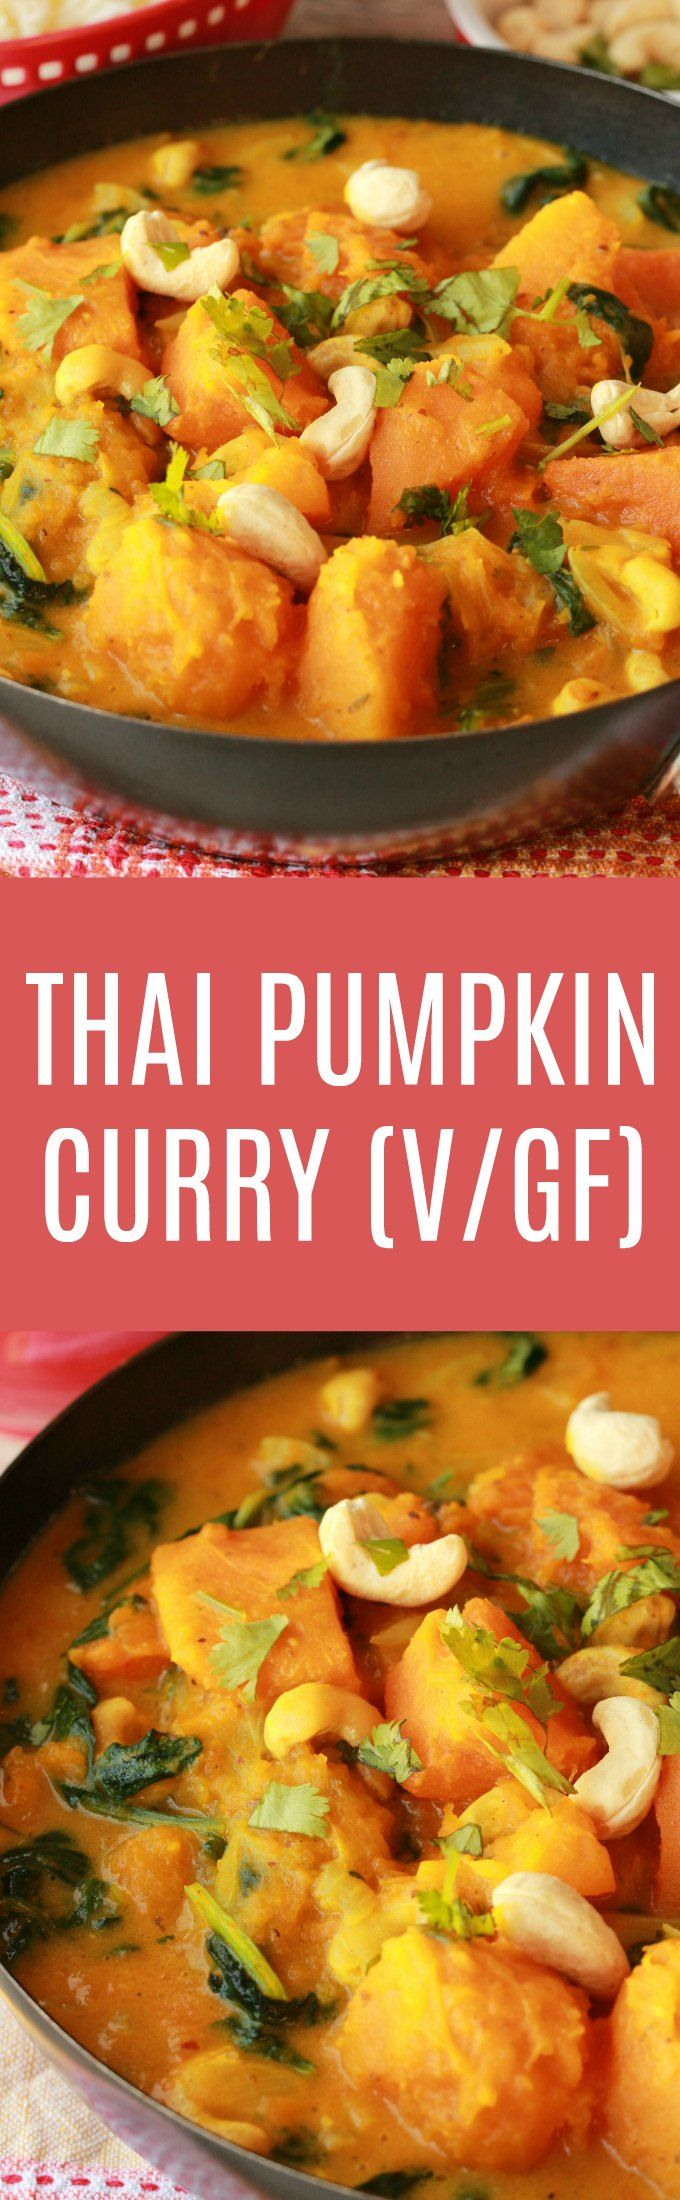 Hearty and satisfying Thai inspired pumpkin curry! This easy 10-ingredient recipe (including the rice!) is ready in less than 45 minutes and makes a fabulously delicious dinner. Vegan | Vegan Dinner | Vegan Entree | Savory | Gluten Free #vegan #pumpkincurry #vegandinner #glutenfree